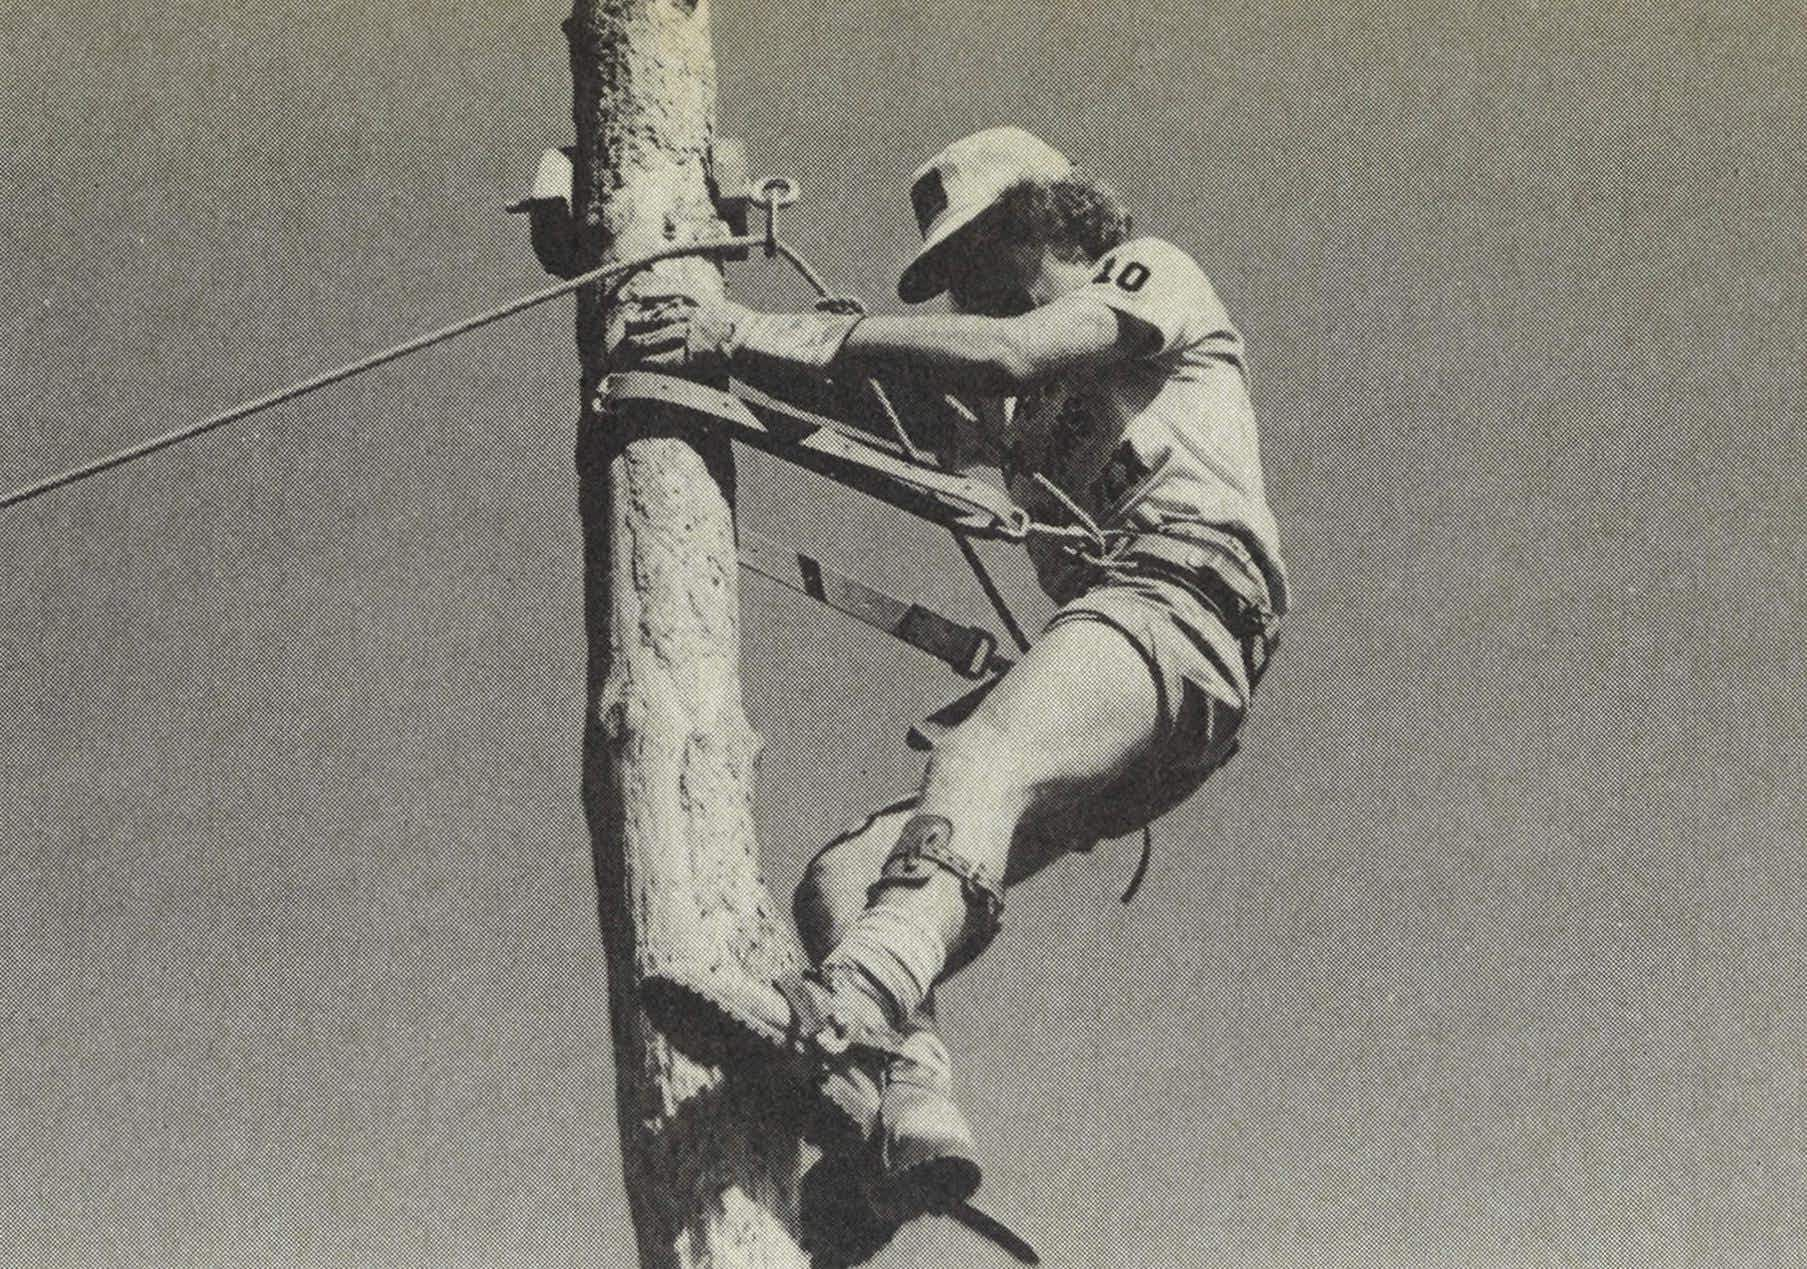 At Philmont, scouts learn such necessary skills as how to scale a denuded tree trunk.